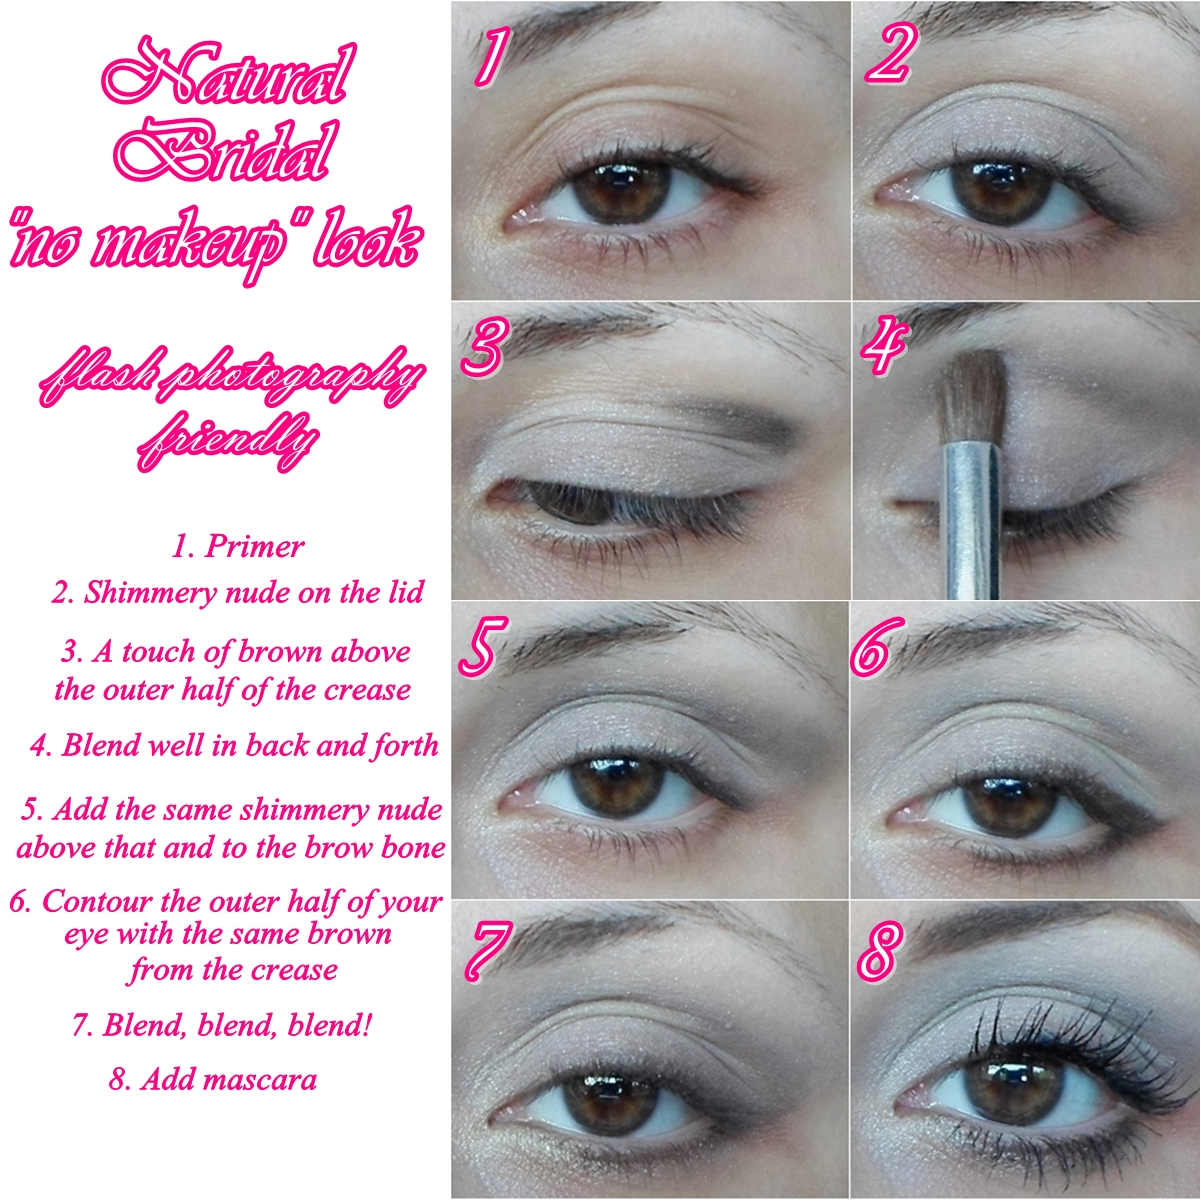 Natural Makeup Tutorial Step By Step Pictures | www ...